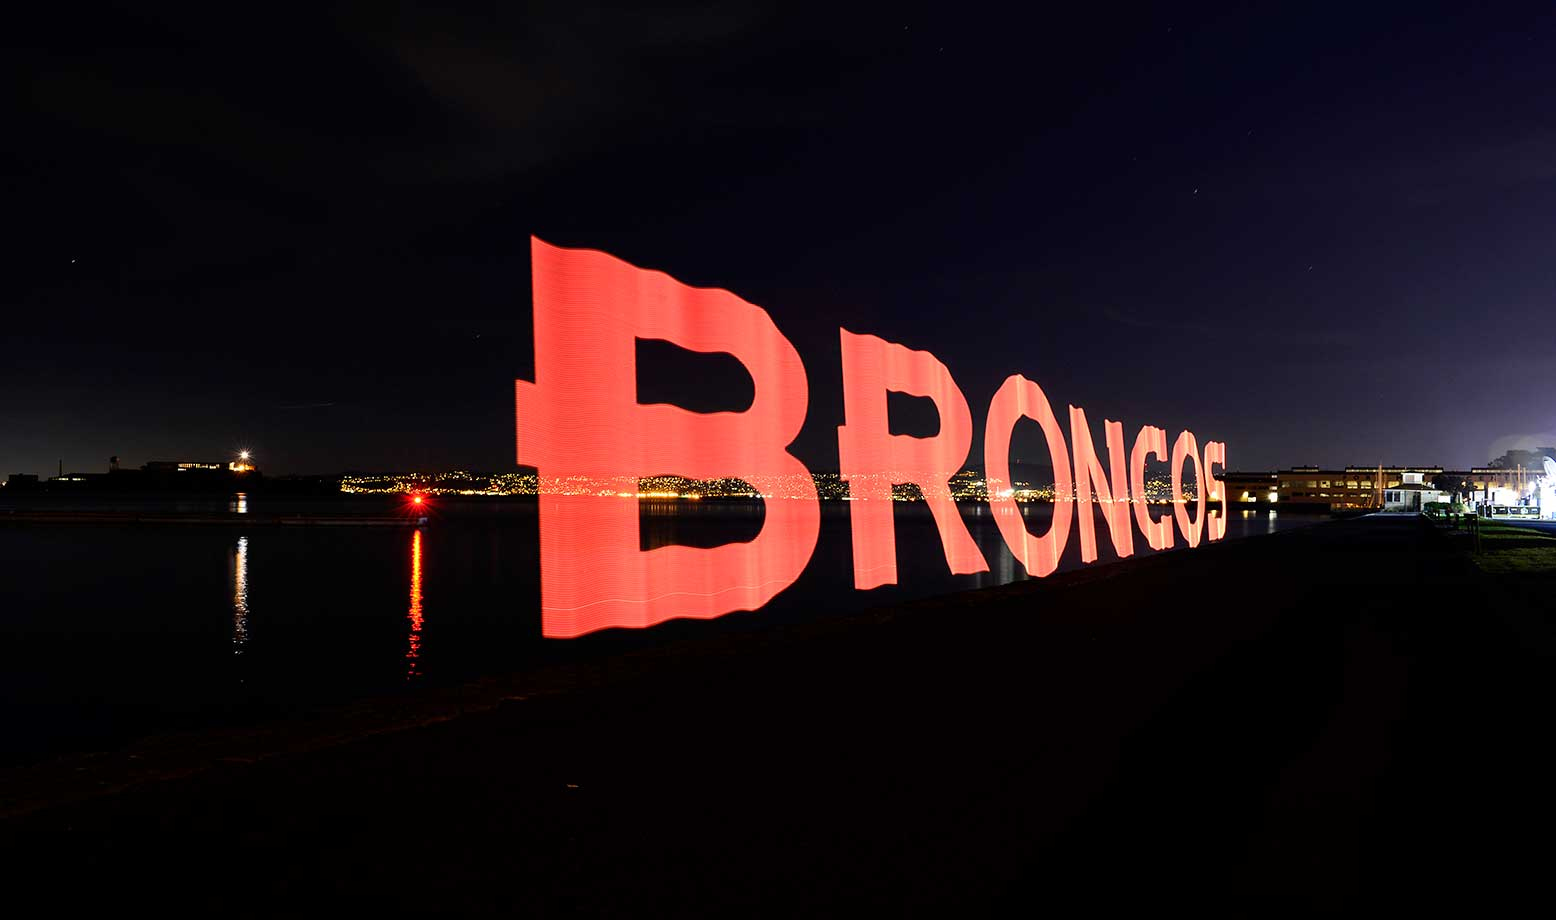 A still photograph of the Denver Broncos logo painted with light using a Pixelstick during a 30 second long exposure. Alcatraz in background.